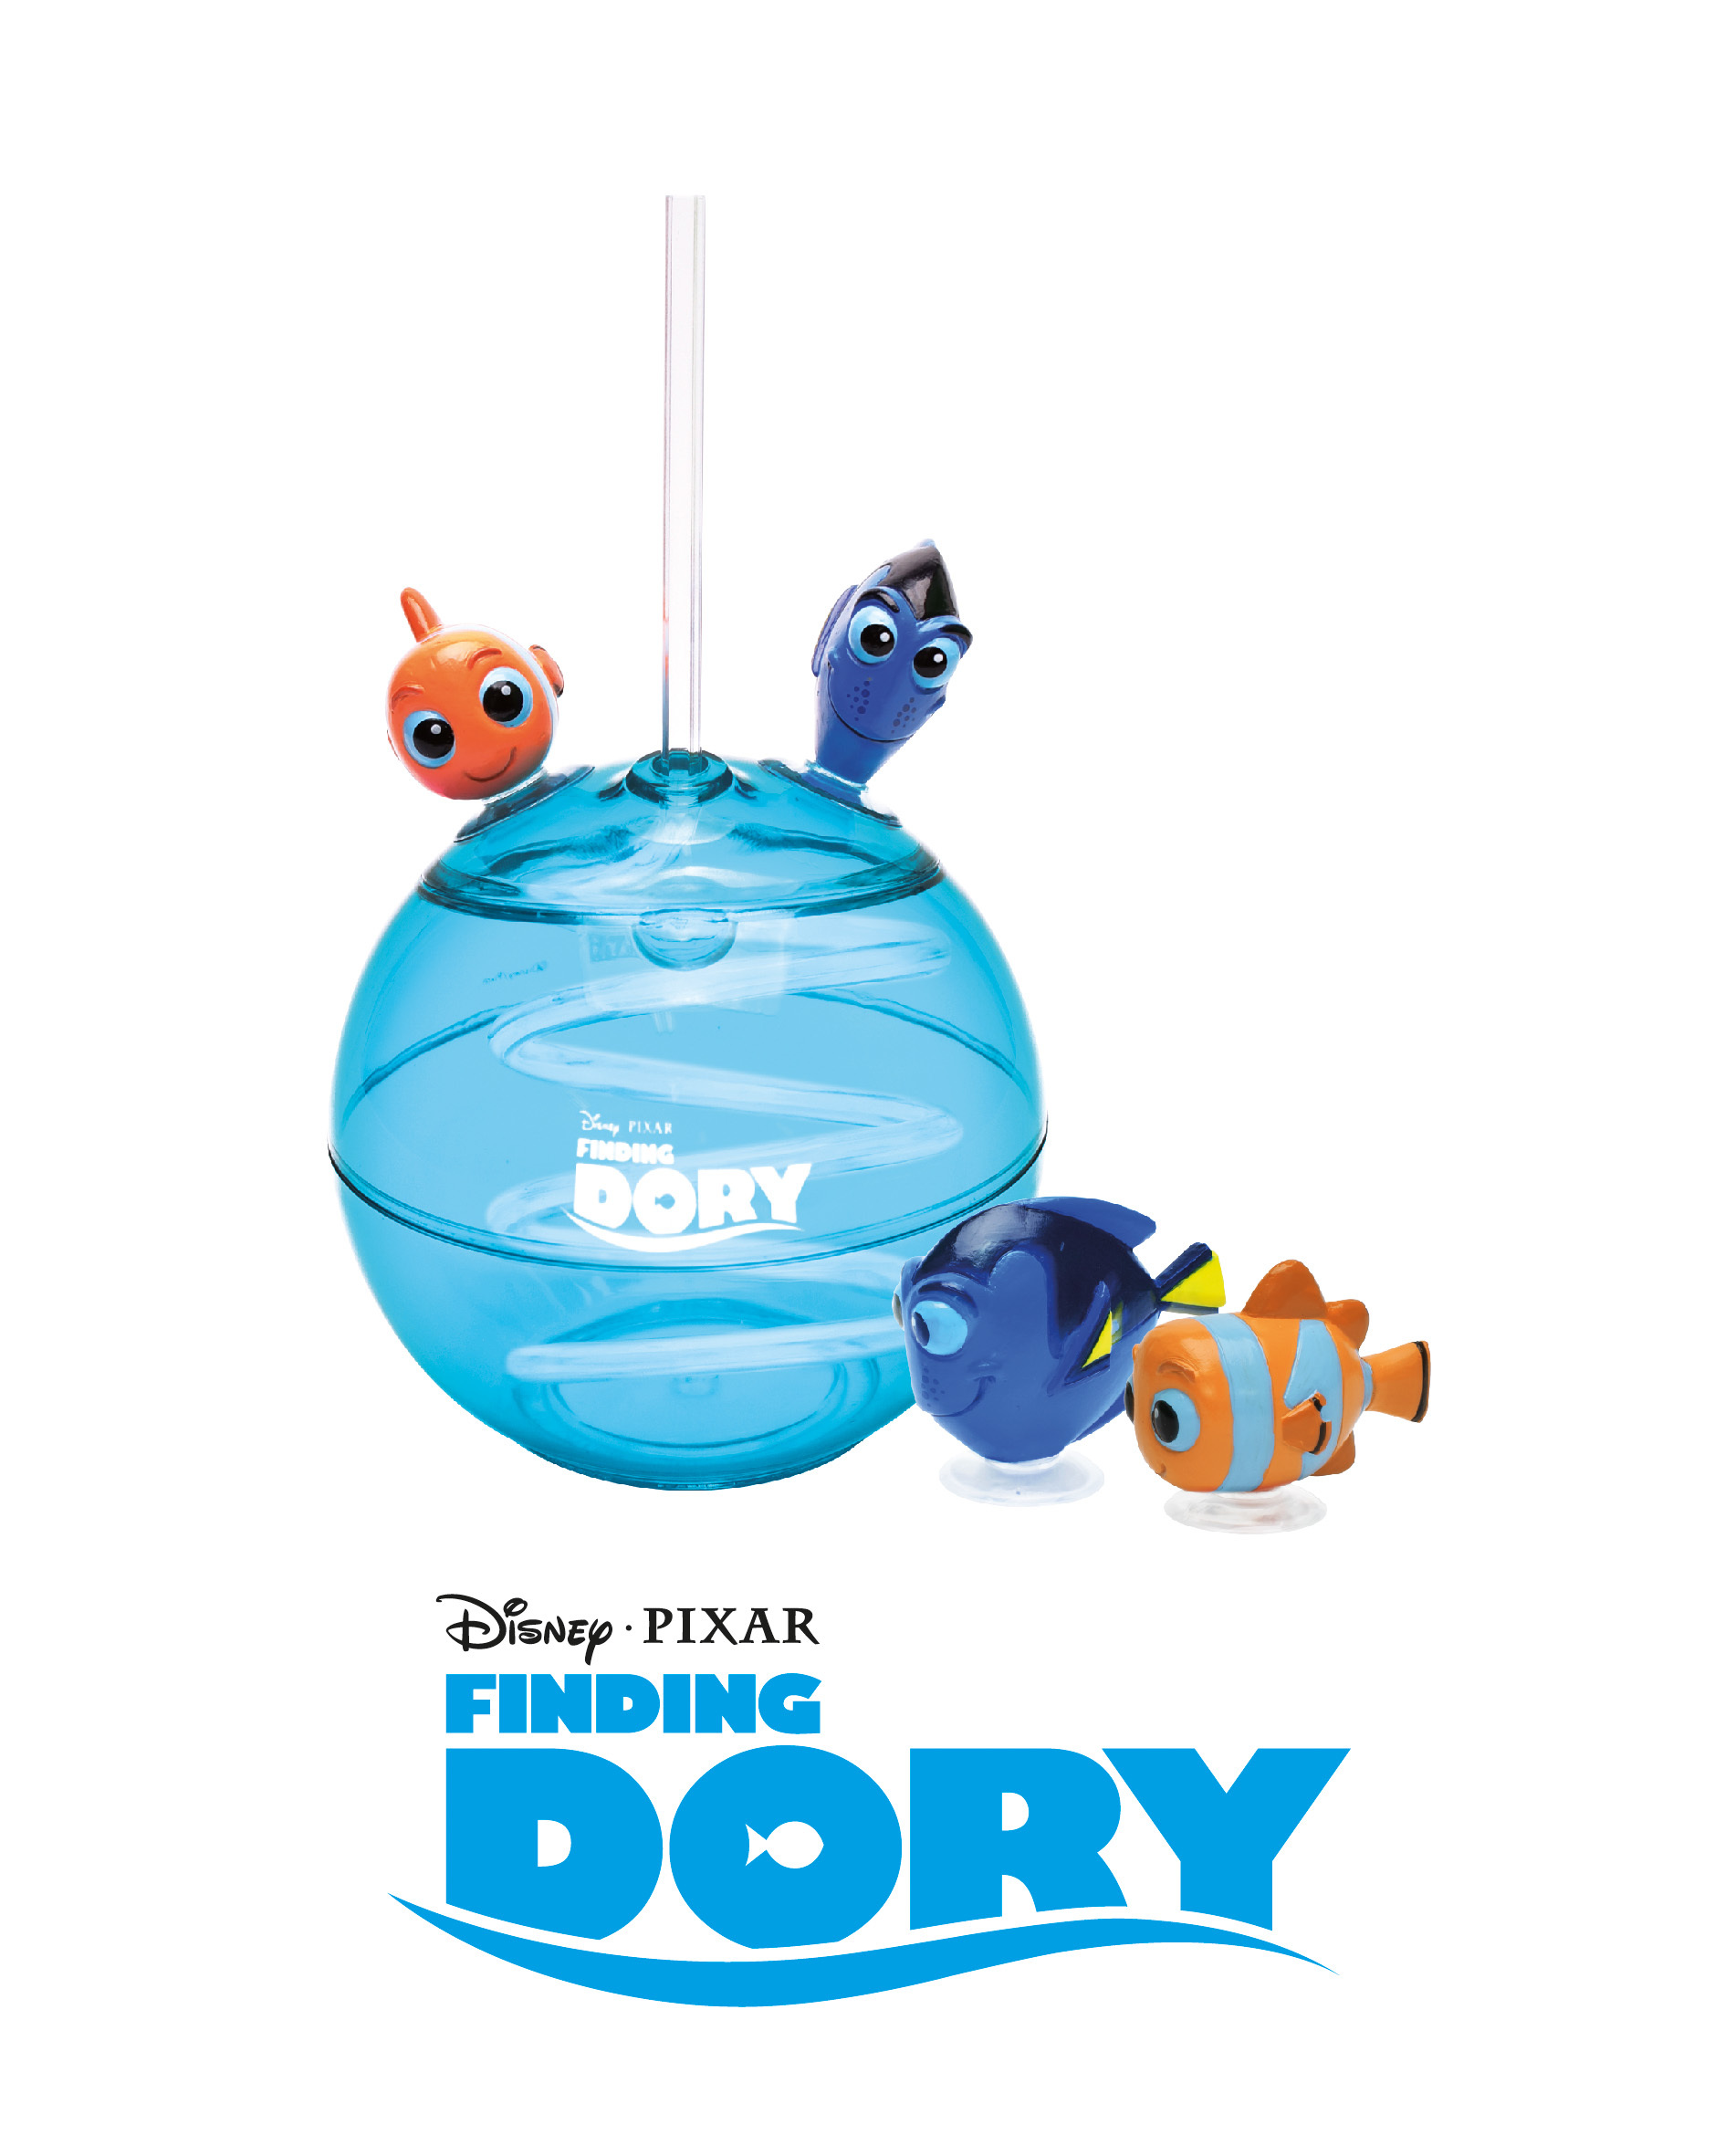 'Finding Dory, 2016' - TOY CUP - CGV